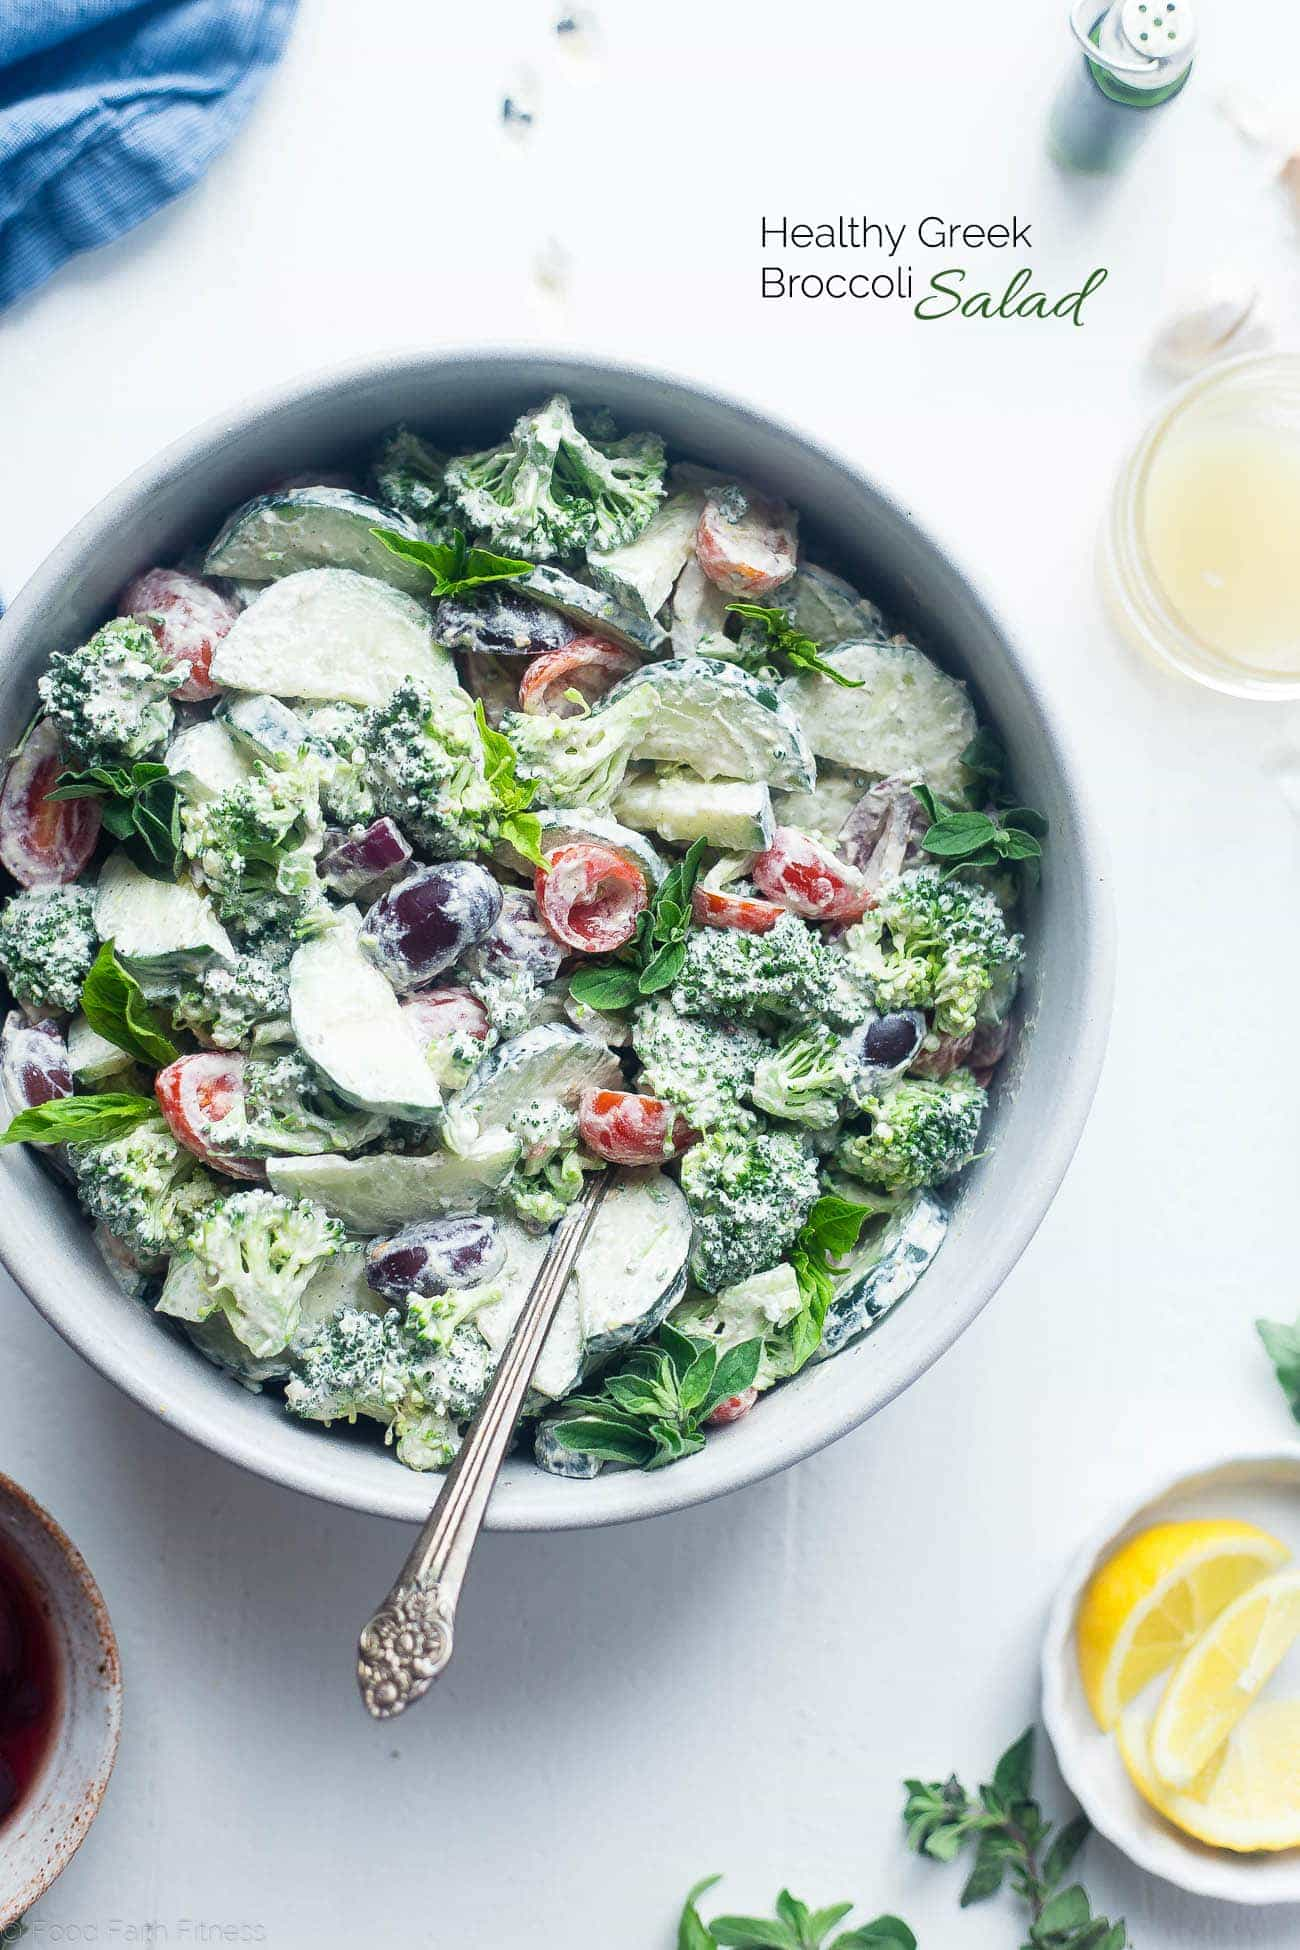 Greek Healthy Broccoli Salad - This low carb, raw broccoli salad is so creamy you'll never know it's vegan, paleo and whole30 compliant! It's an easy side dish that's perfect for spring potlucks! | Foodfaithfitness.com | @FoodFaithFit